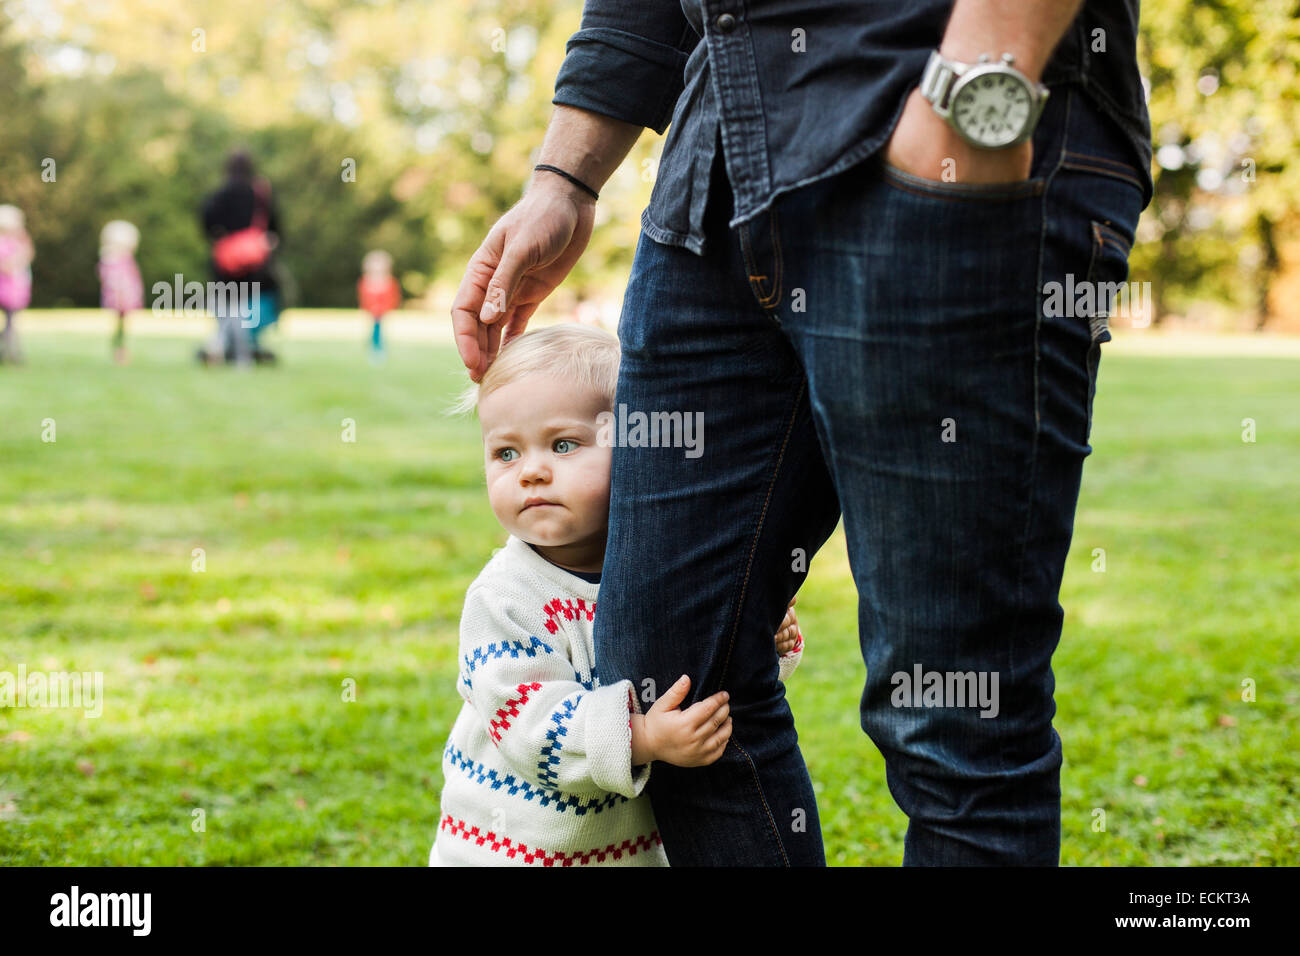 Baby Girl holding father's leg in park Photo Stock